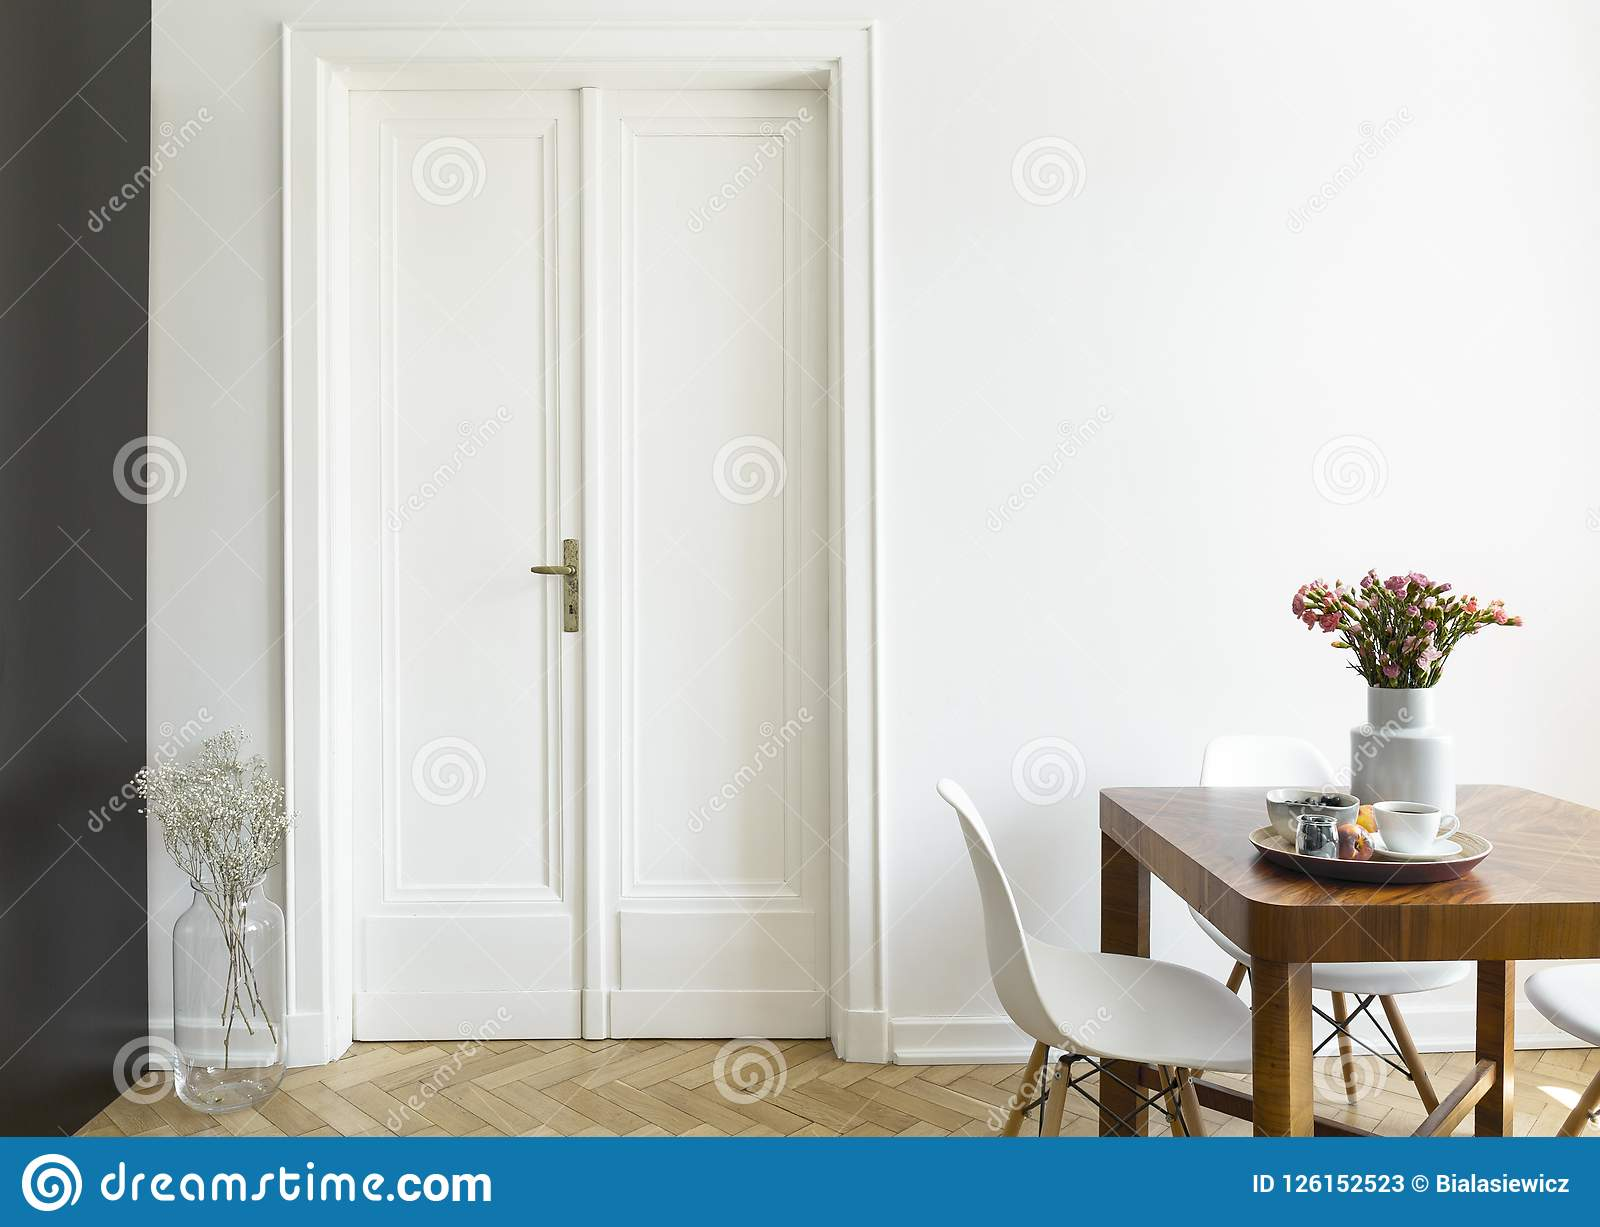 A White Wall With Double Door Next To Wooden Breakfast Table And Chairs In